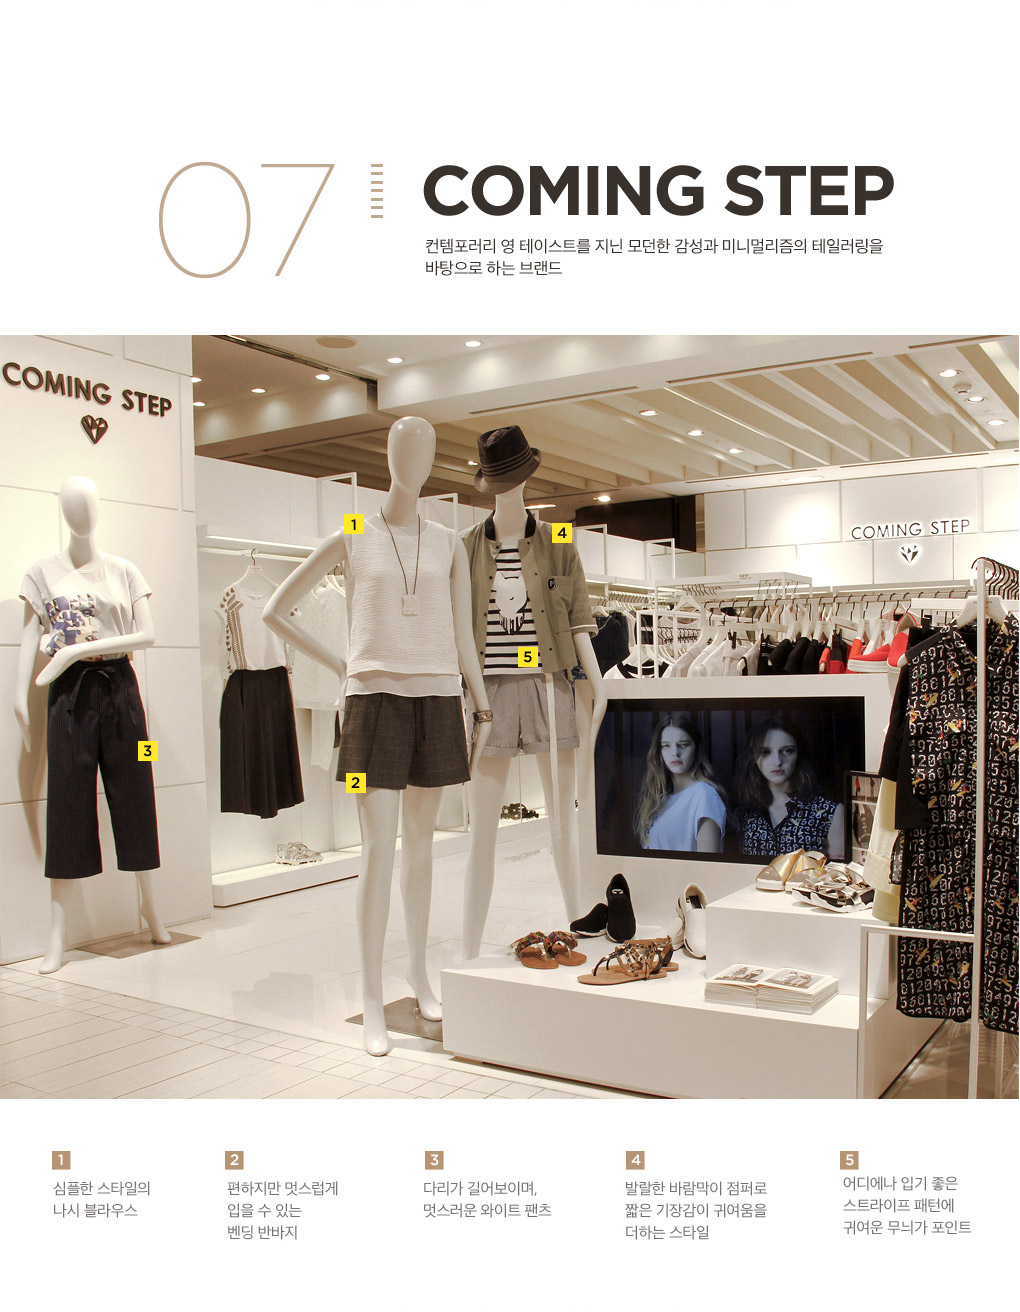 07.COMING STEP